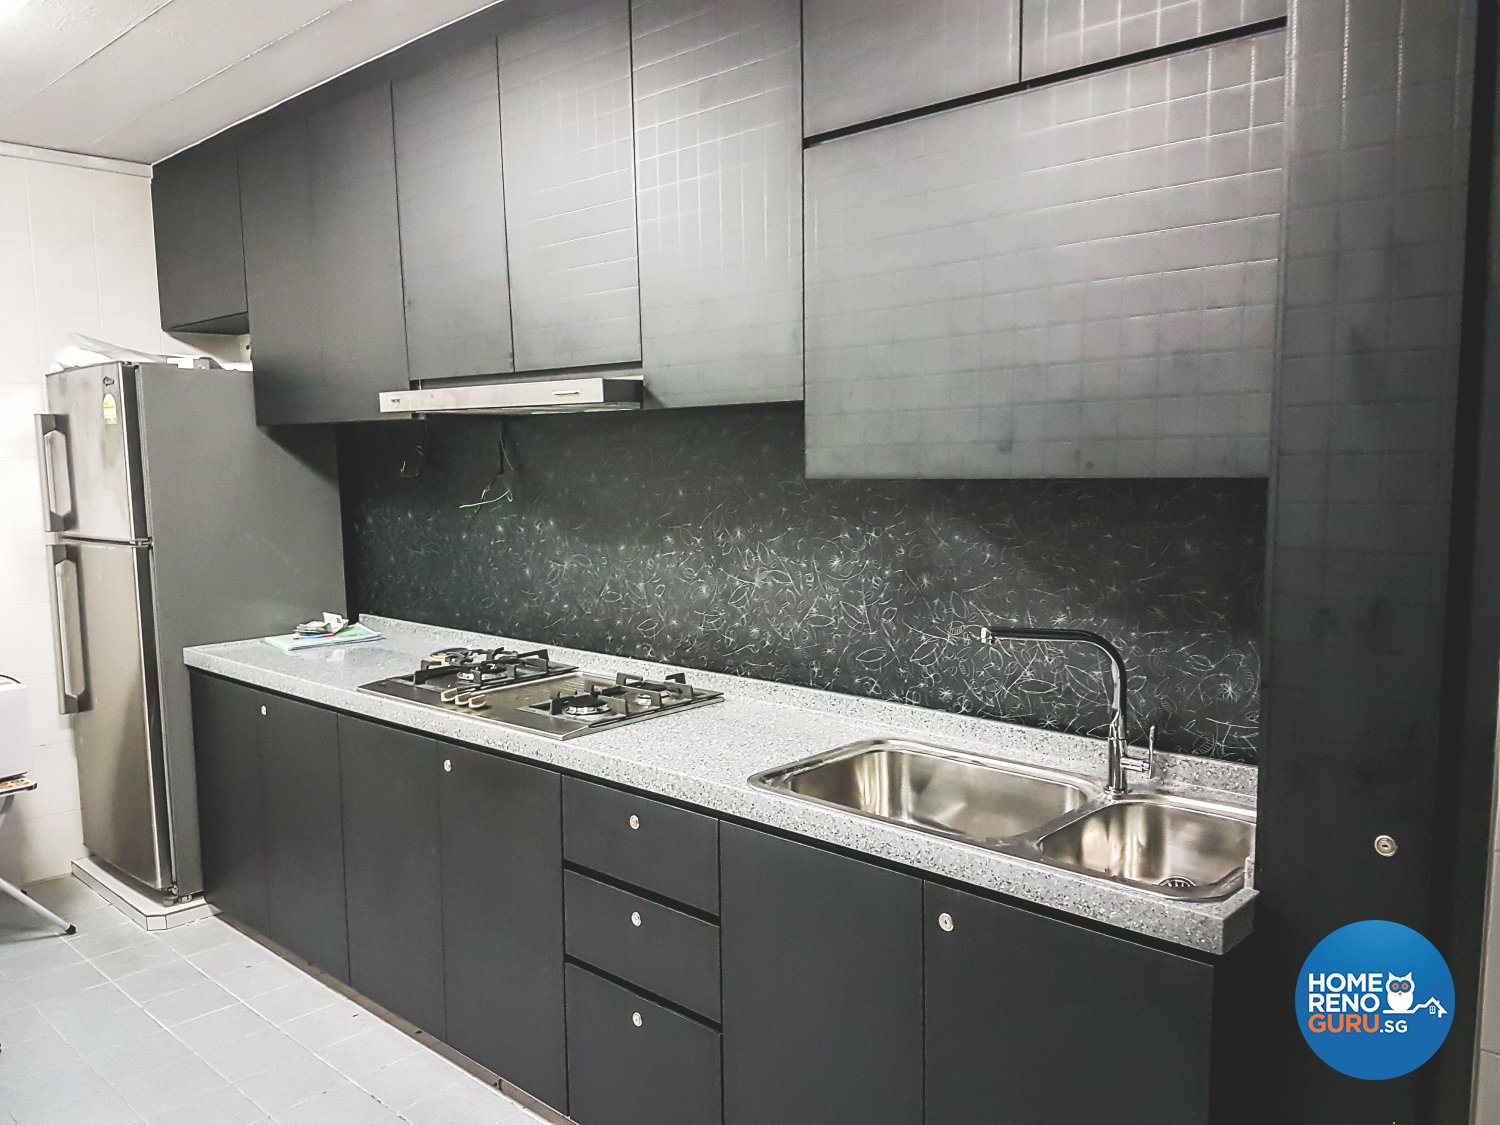 How 2 Design Pte Ltd Kitchen Cabinet Yishun 3771 Singapore Interior Design Gallery Homerenoguru